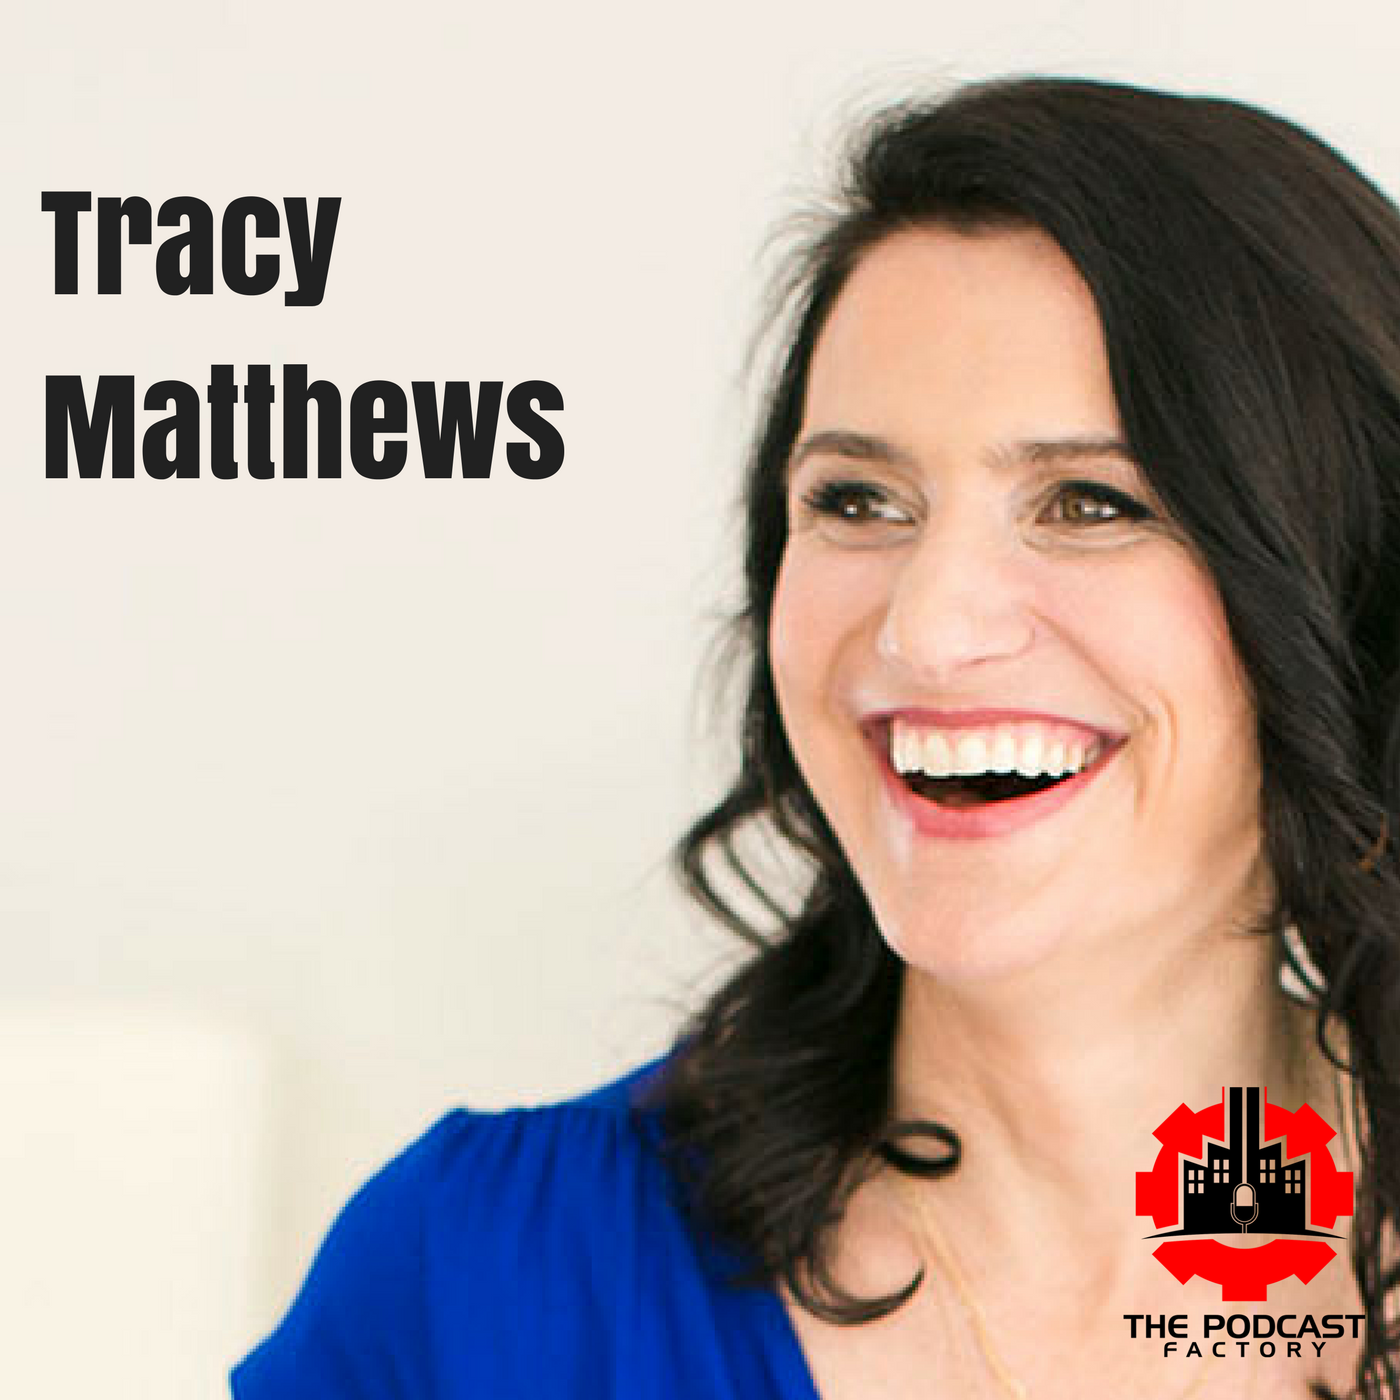 Tracy Matthews recommends The Podcast Factory